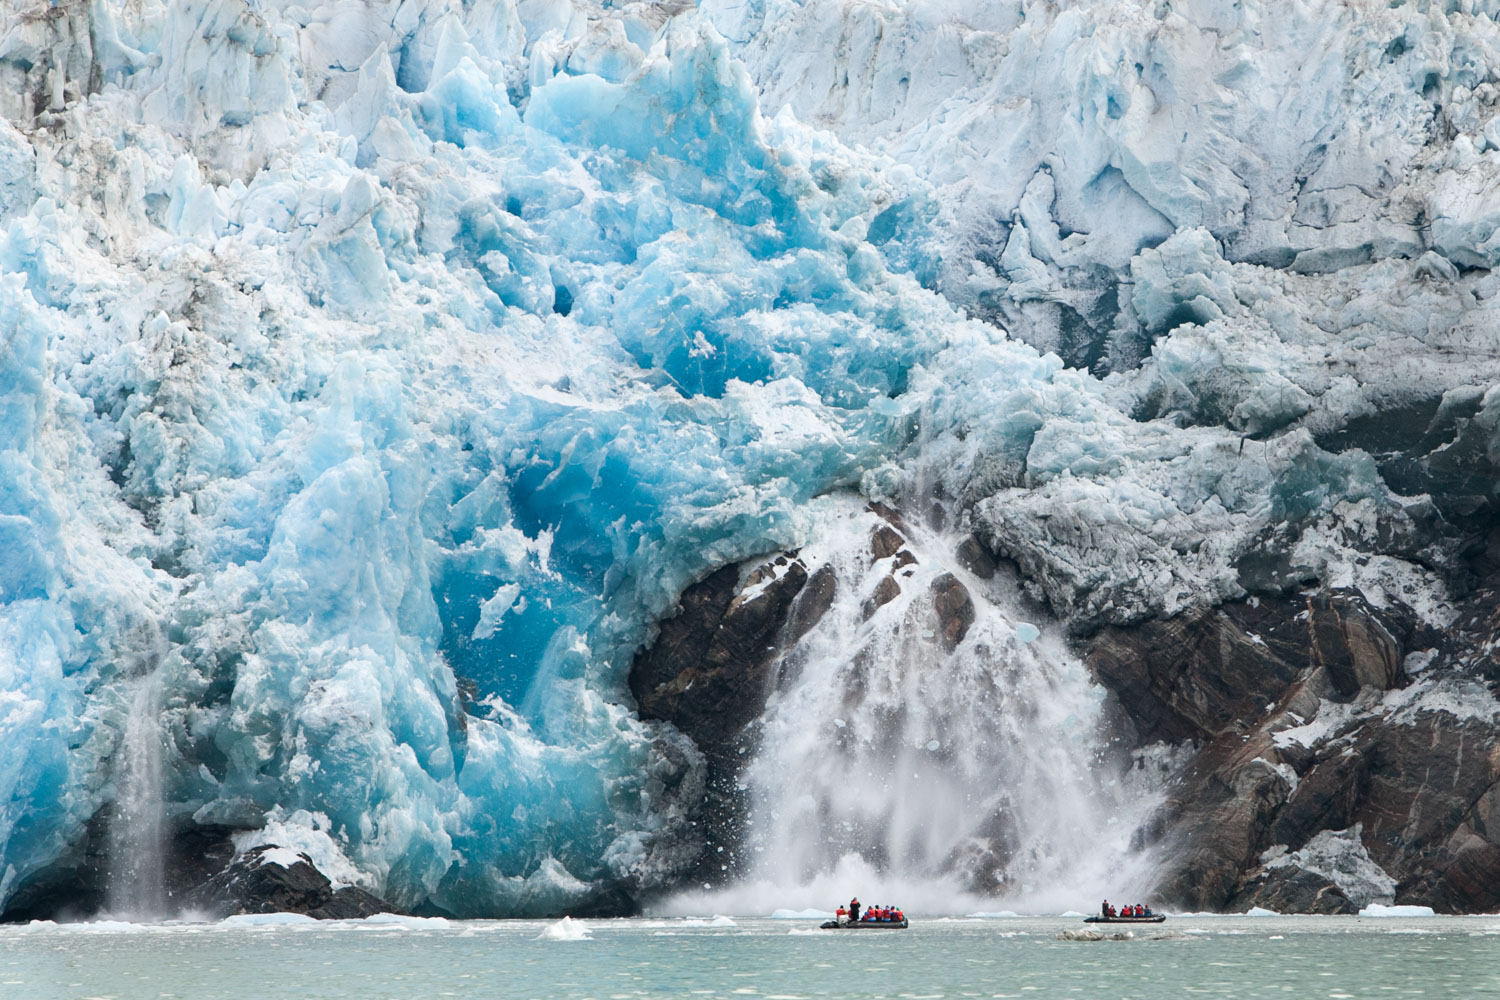 At the mouth of a glacier within Alaska's Inside Passage, travelers in Zodiac boats navigate water around icebergs and witness calving.